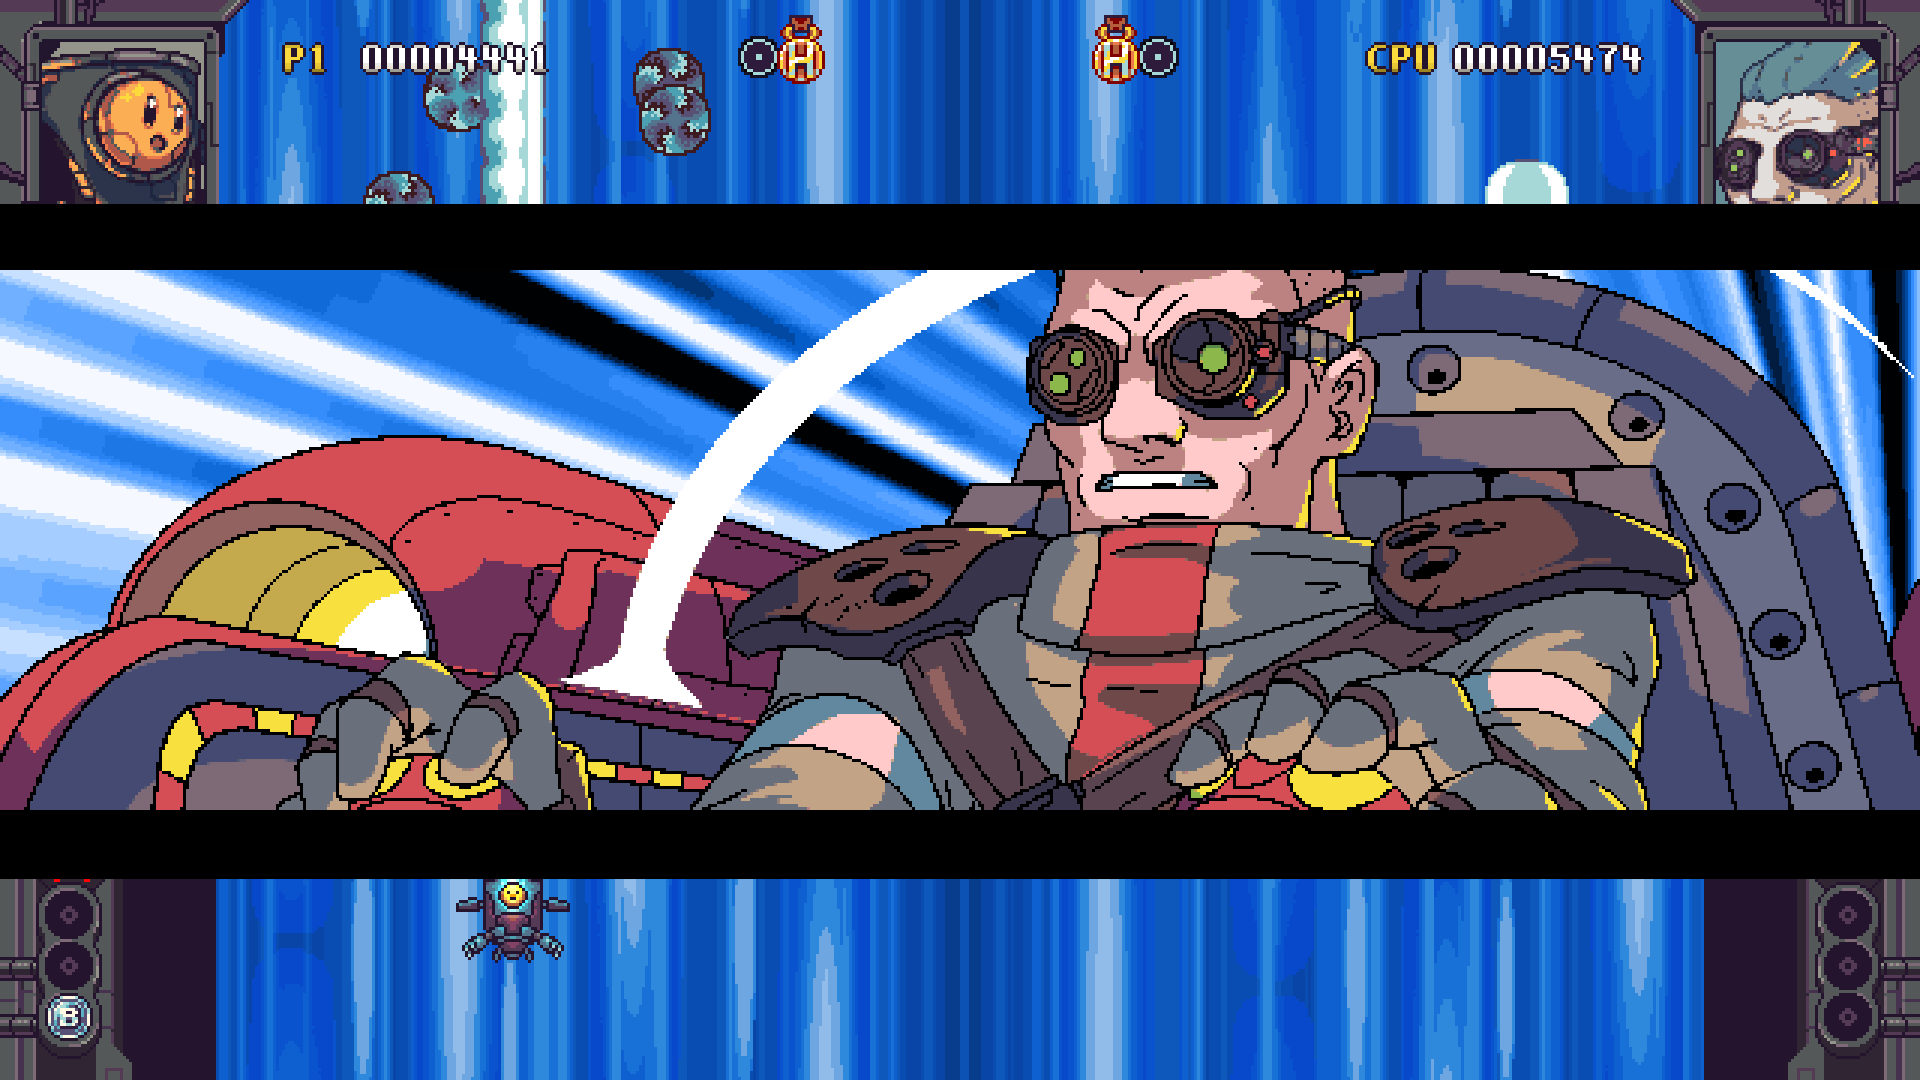 Rival Megagun gameplay screenshot 14